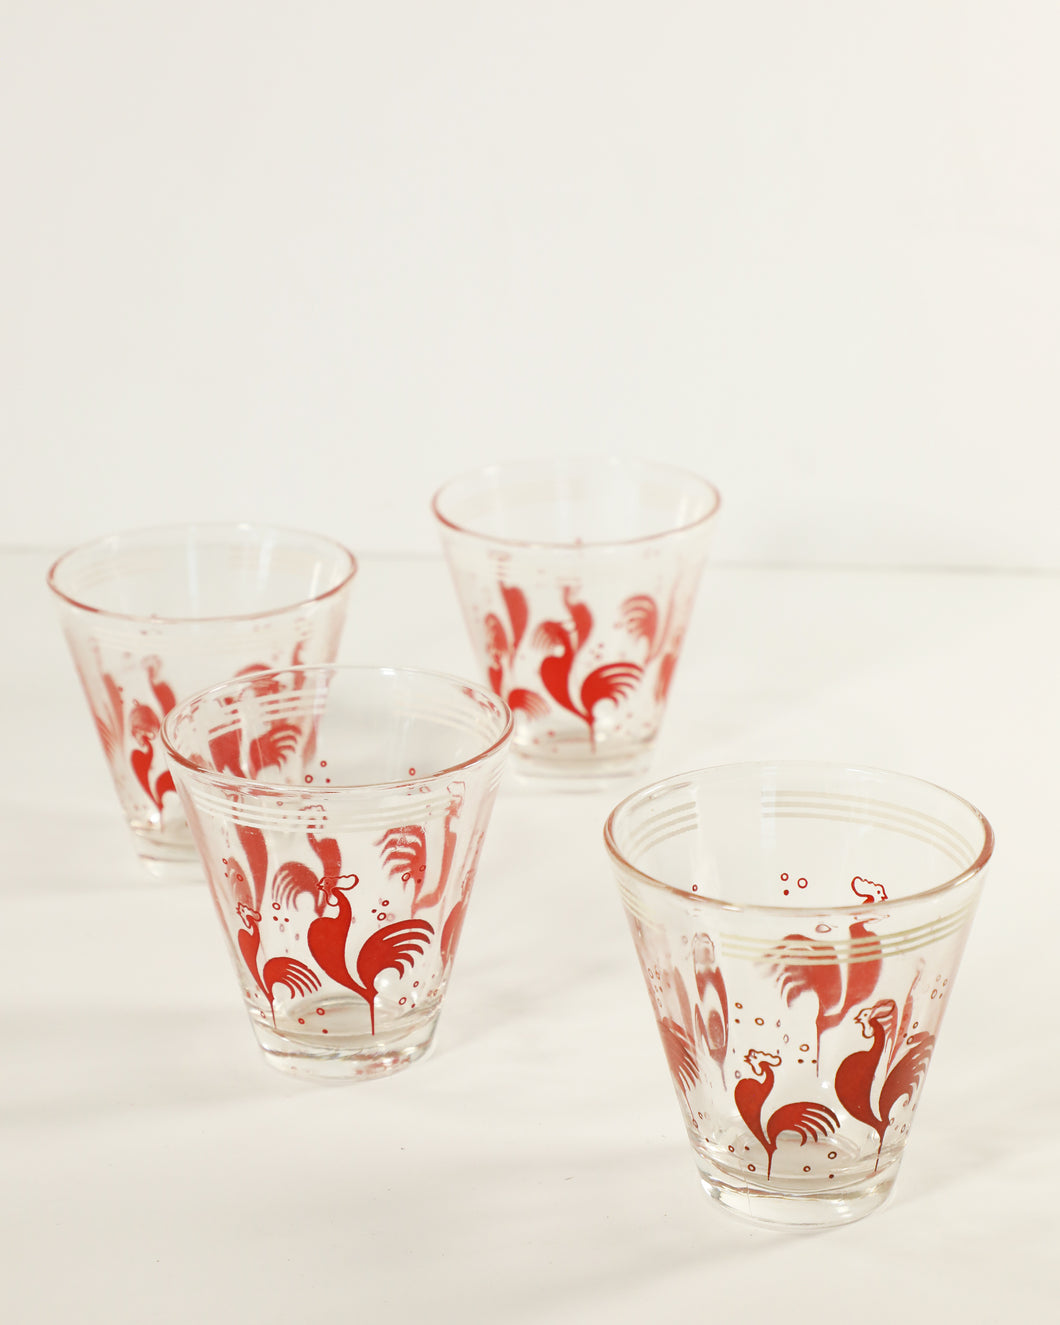 Hazel Atlas Red Rooster Petite Whiskey Glasses, set of 4